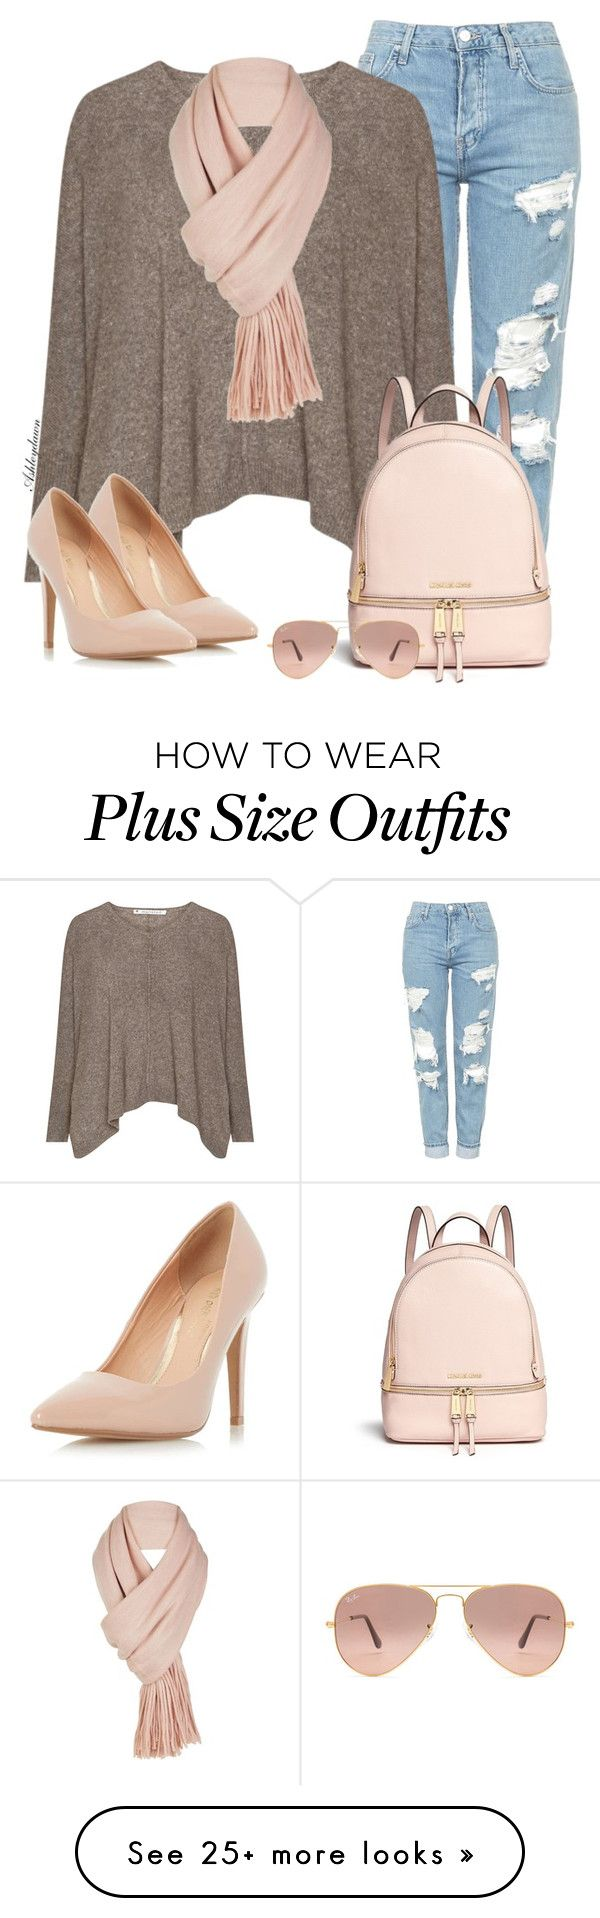 """""""Pink Scarf"""" by ashleydawn2 on Polyvore featuring Topshop, Dorothy Perkins, Michael Kors, Ray-Ban, Free People and scarf"""